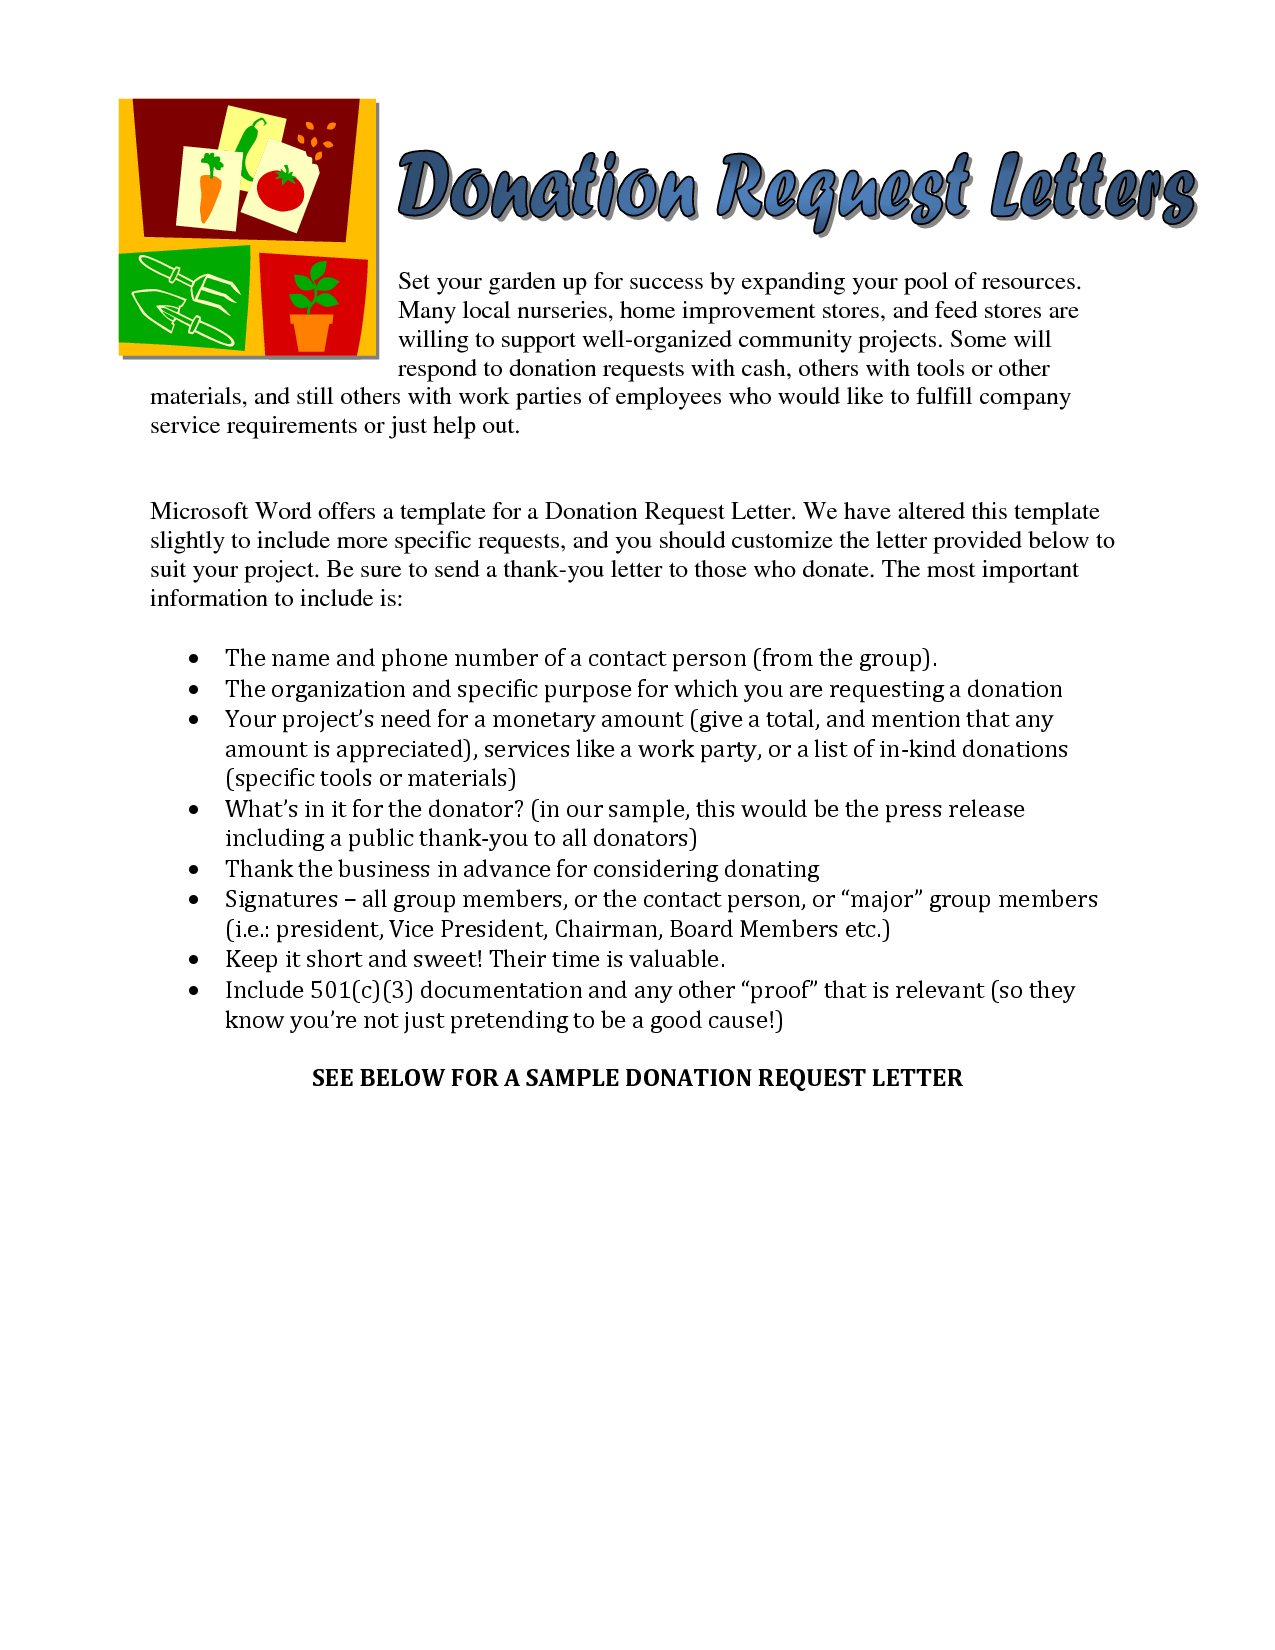 Sample Church Donation Letter | Sample Donation Request letter